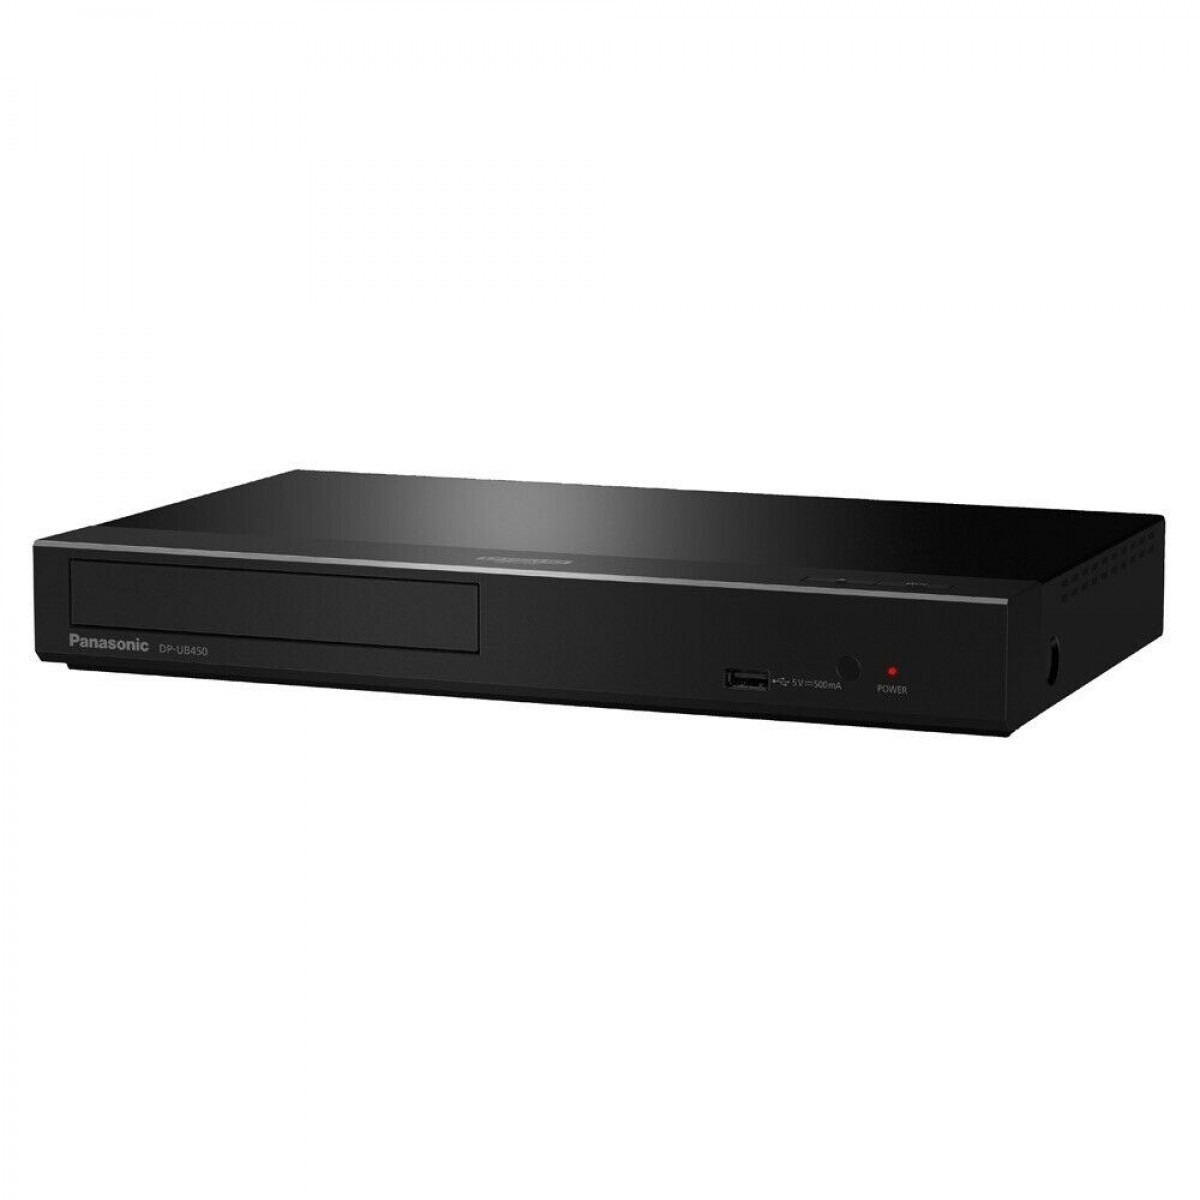 lecteur bluray panasonic dpub450